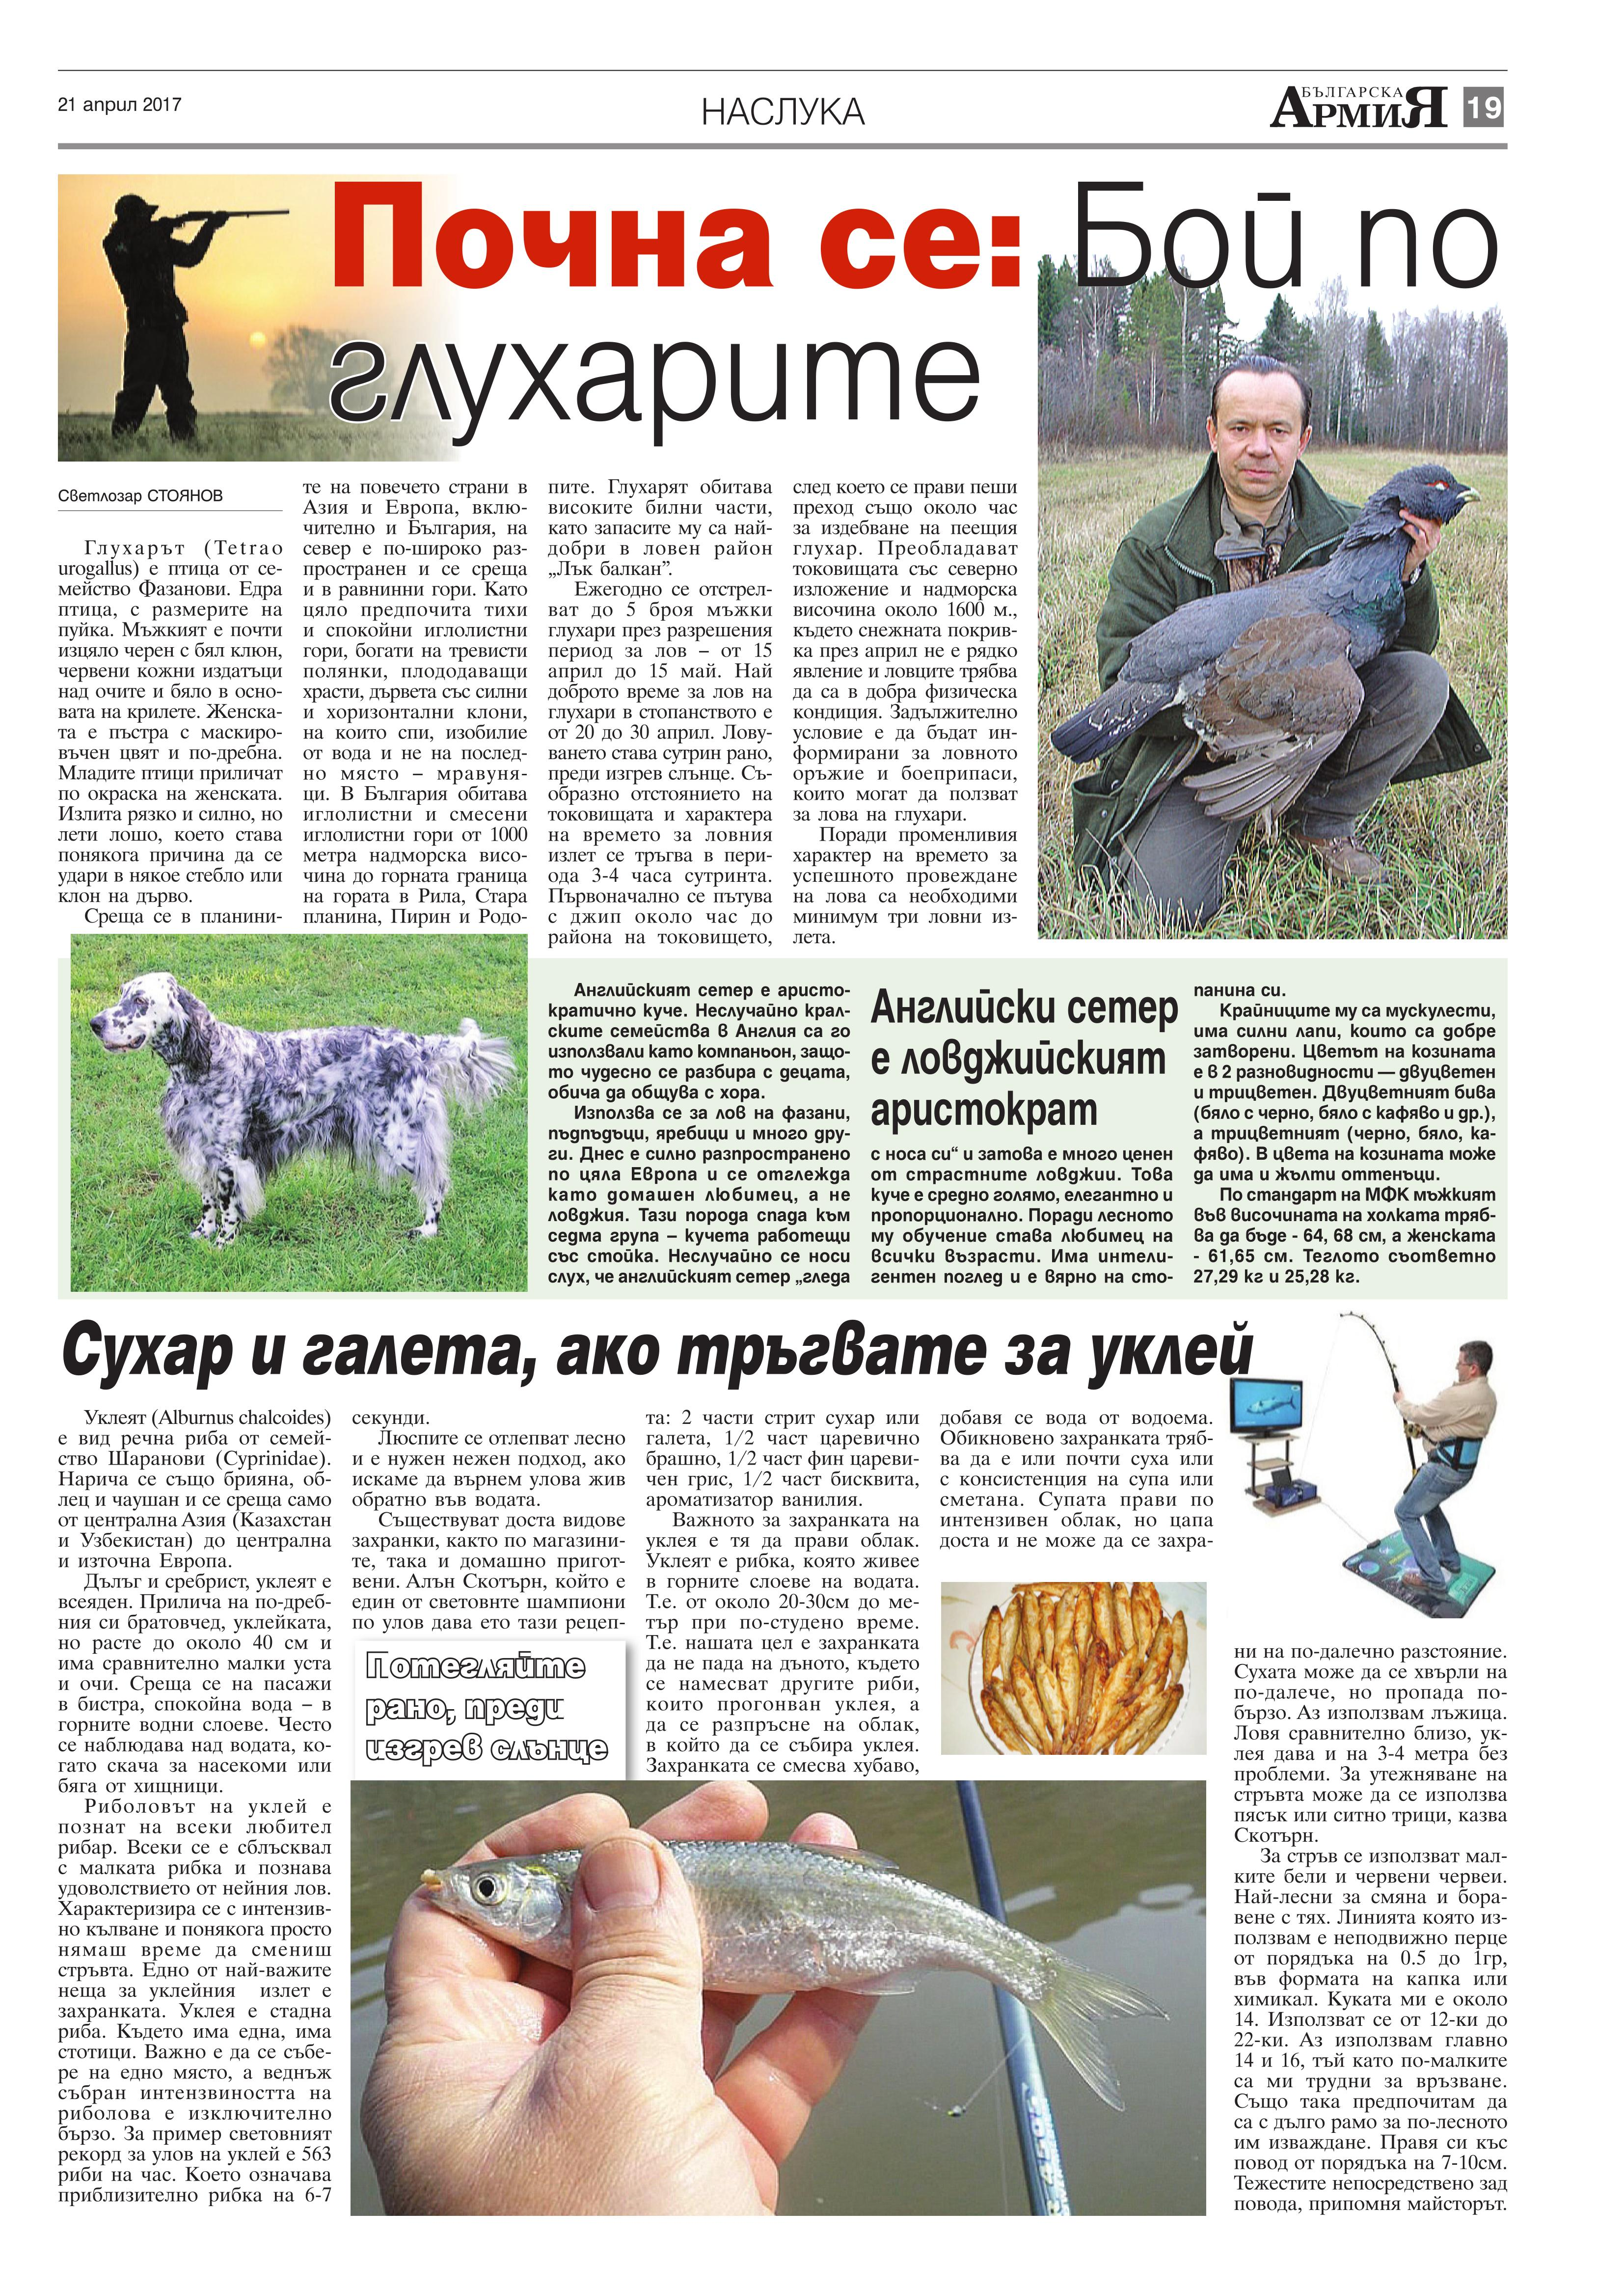 http://armymedia.bg/wp-content/uploads/2015/06/19.page1_-19.jpg